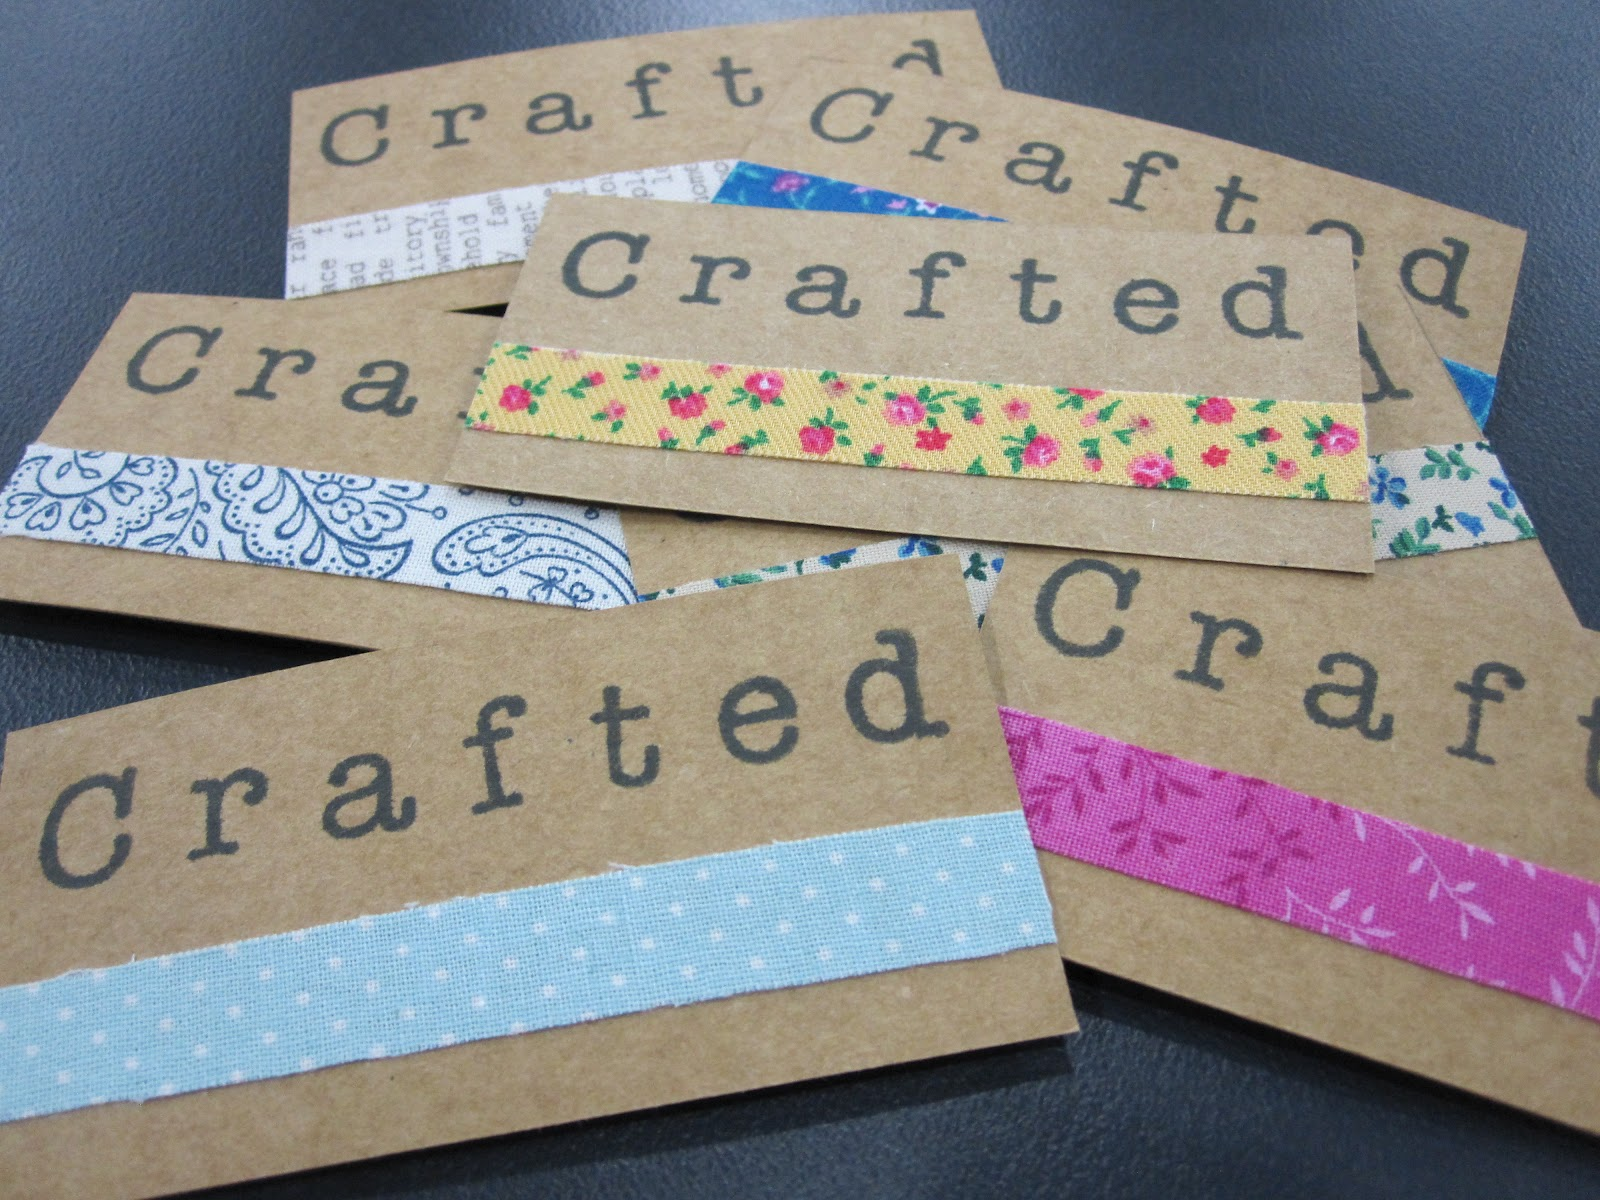 How to: handmade business cards - Crafted